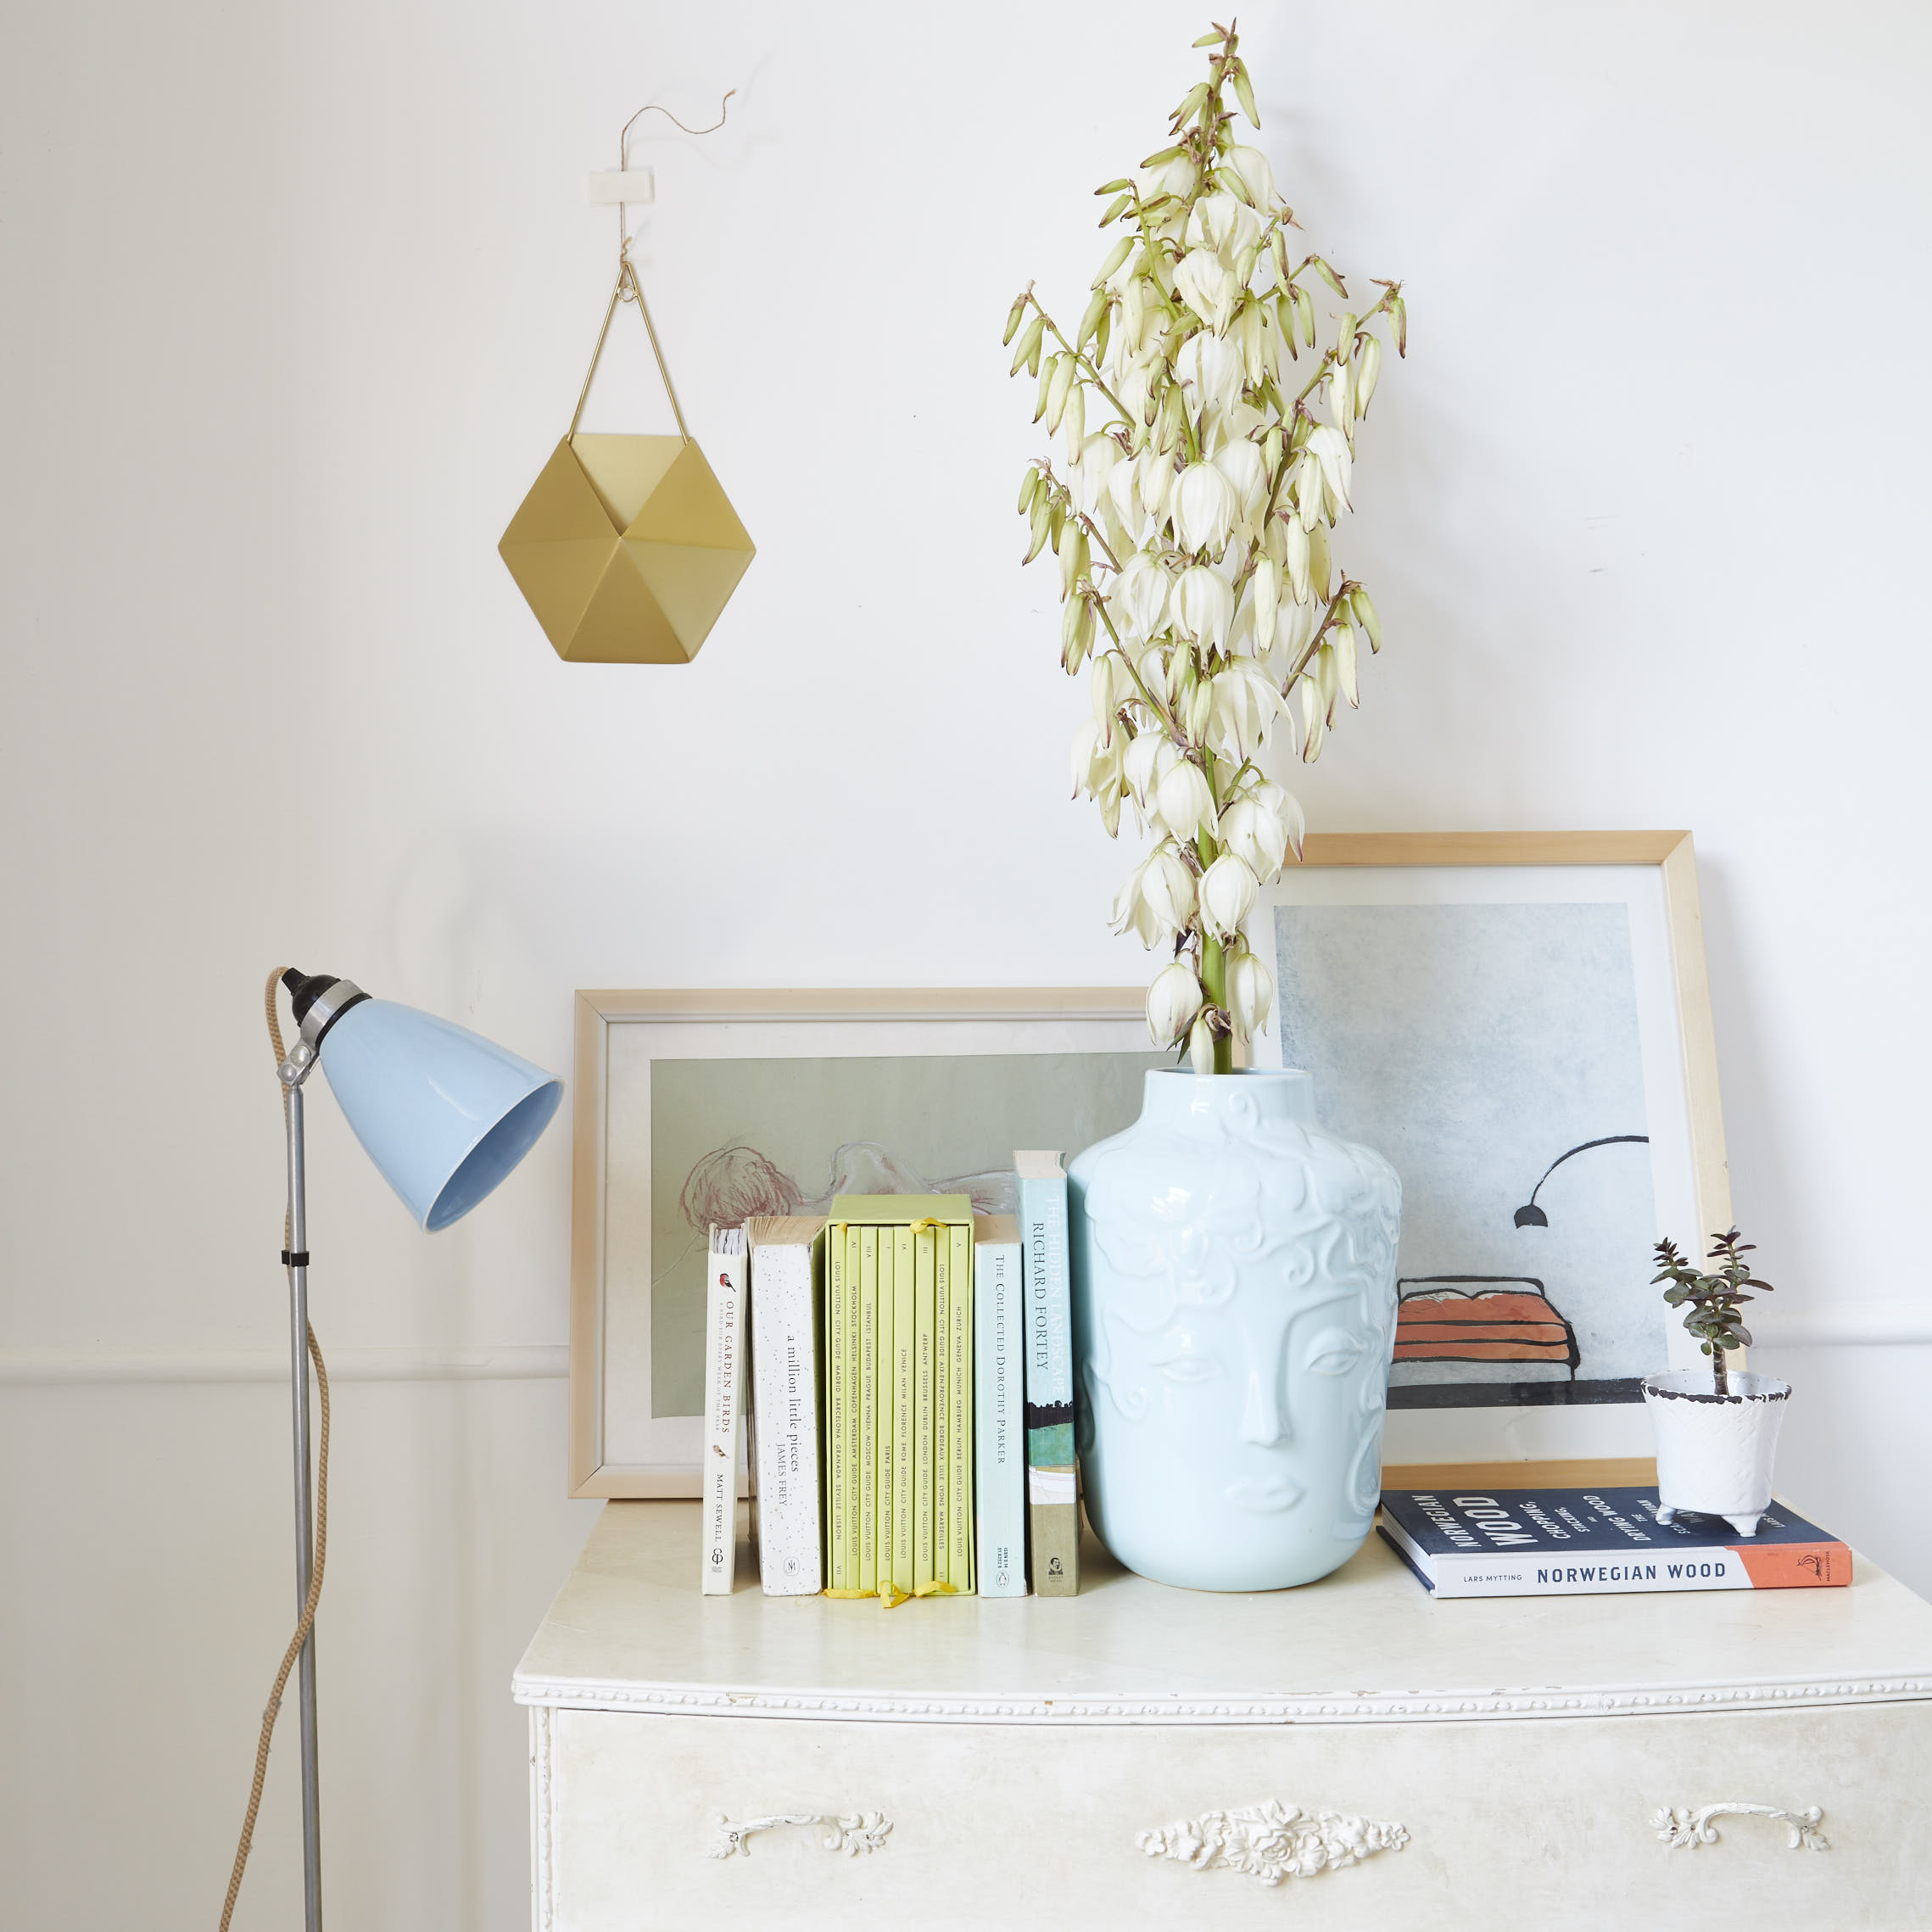 Hector floor light, BTC Originals, Vase,  Marks and Spencer  and planter (hanging on the wall).  Anthropologie